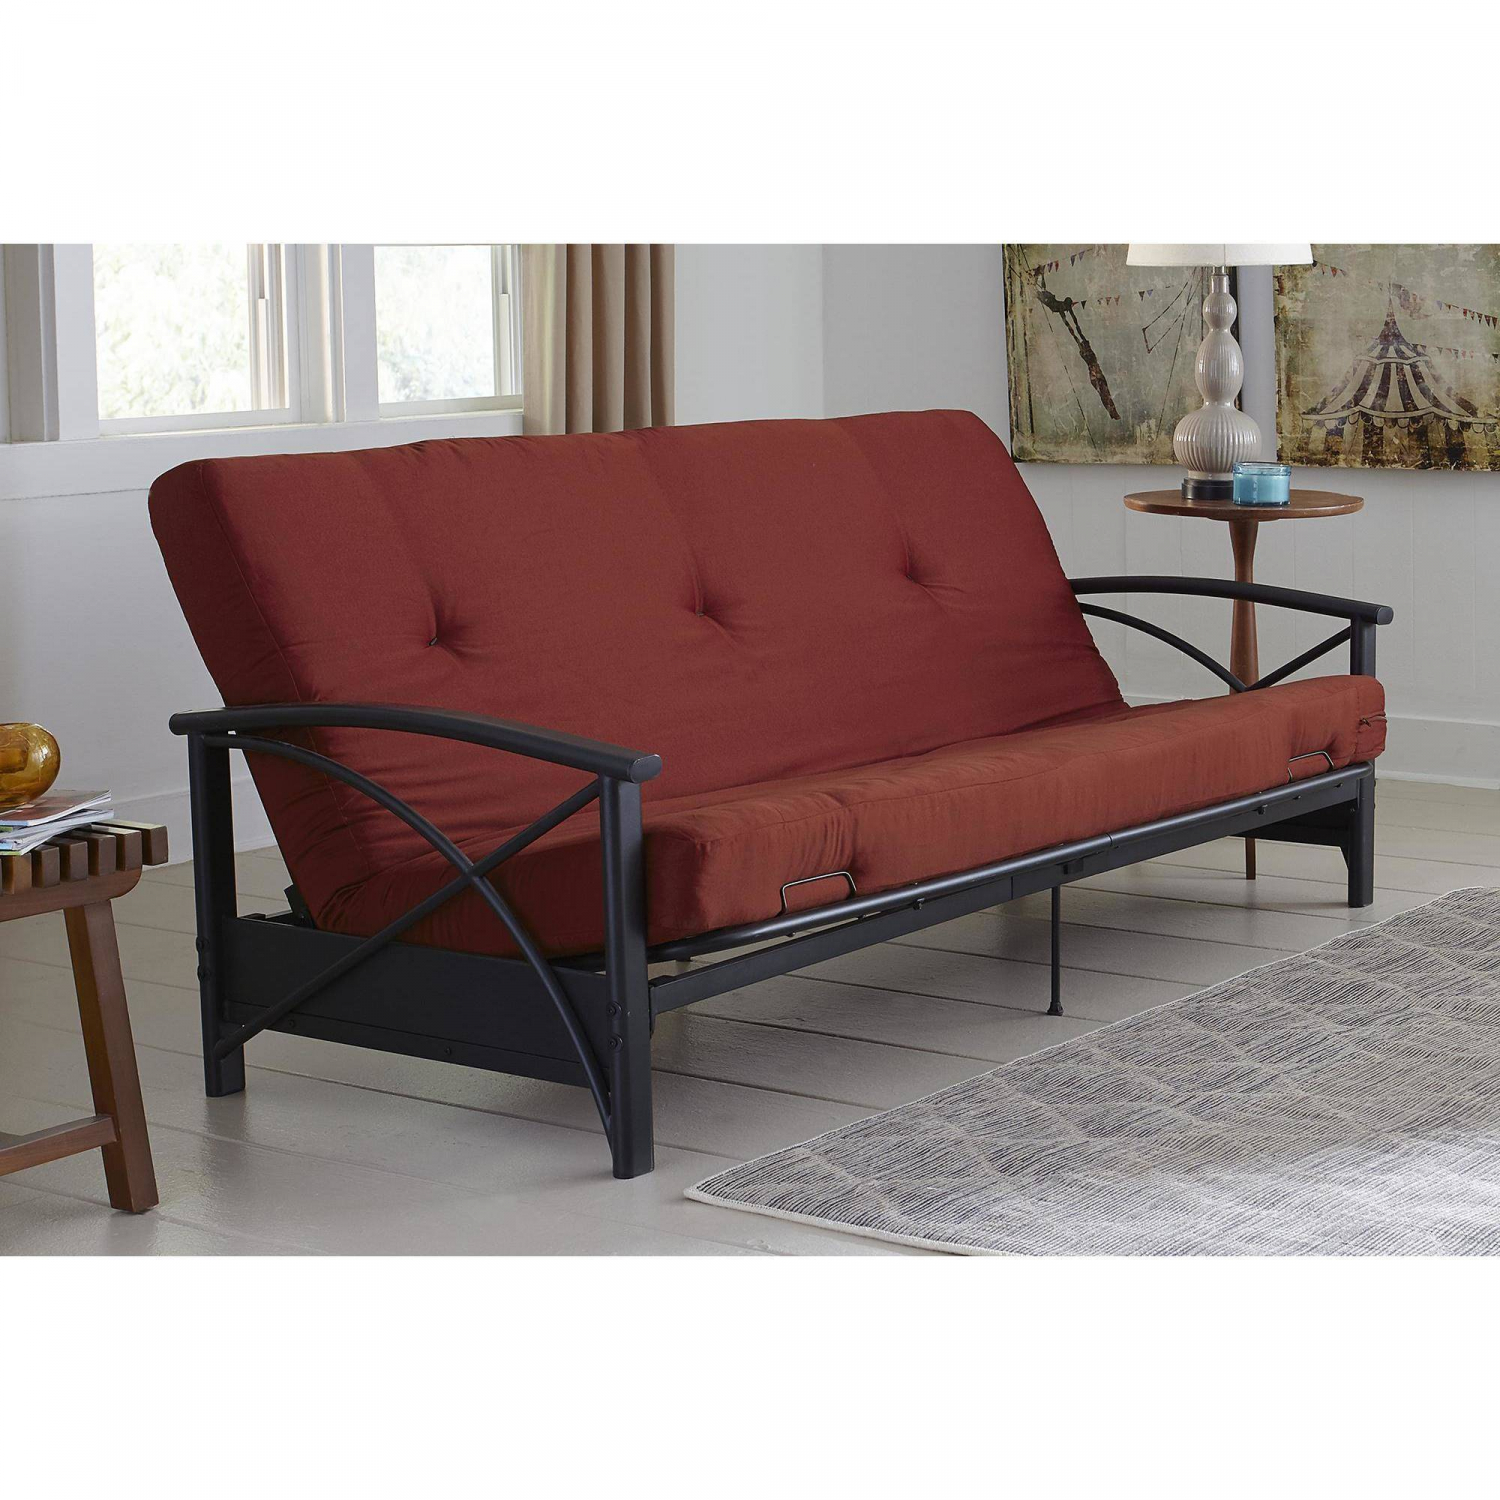 6 INCH FUTON MATTRESS Guest Spare Room Sofa Bed Full Size ...